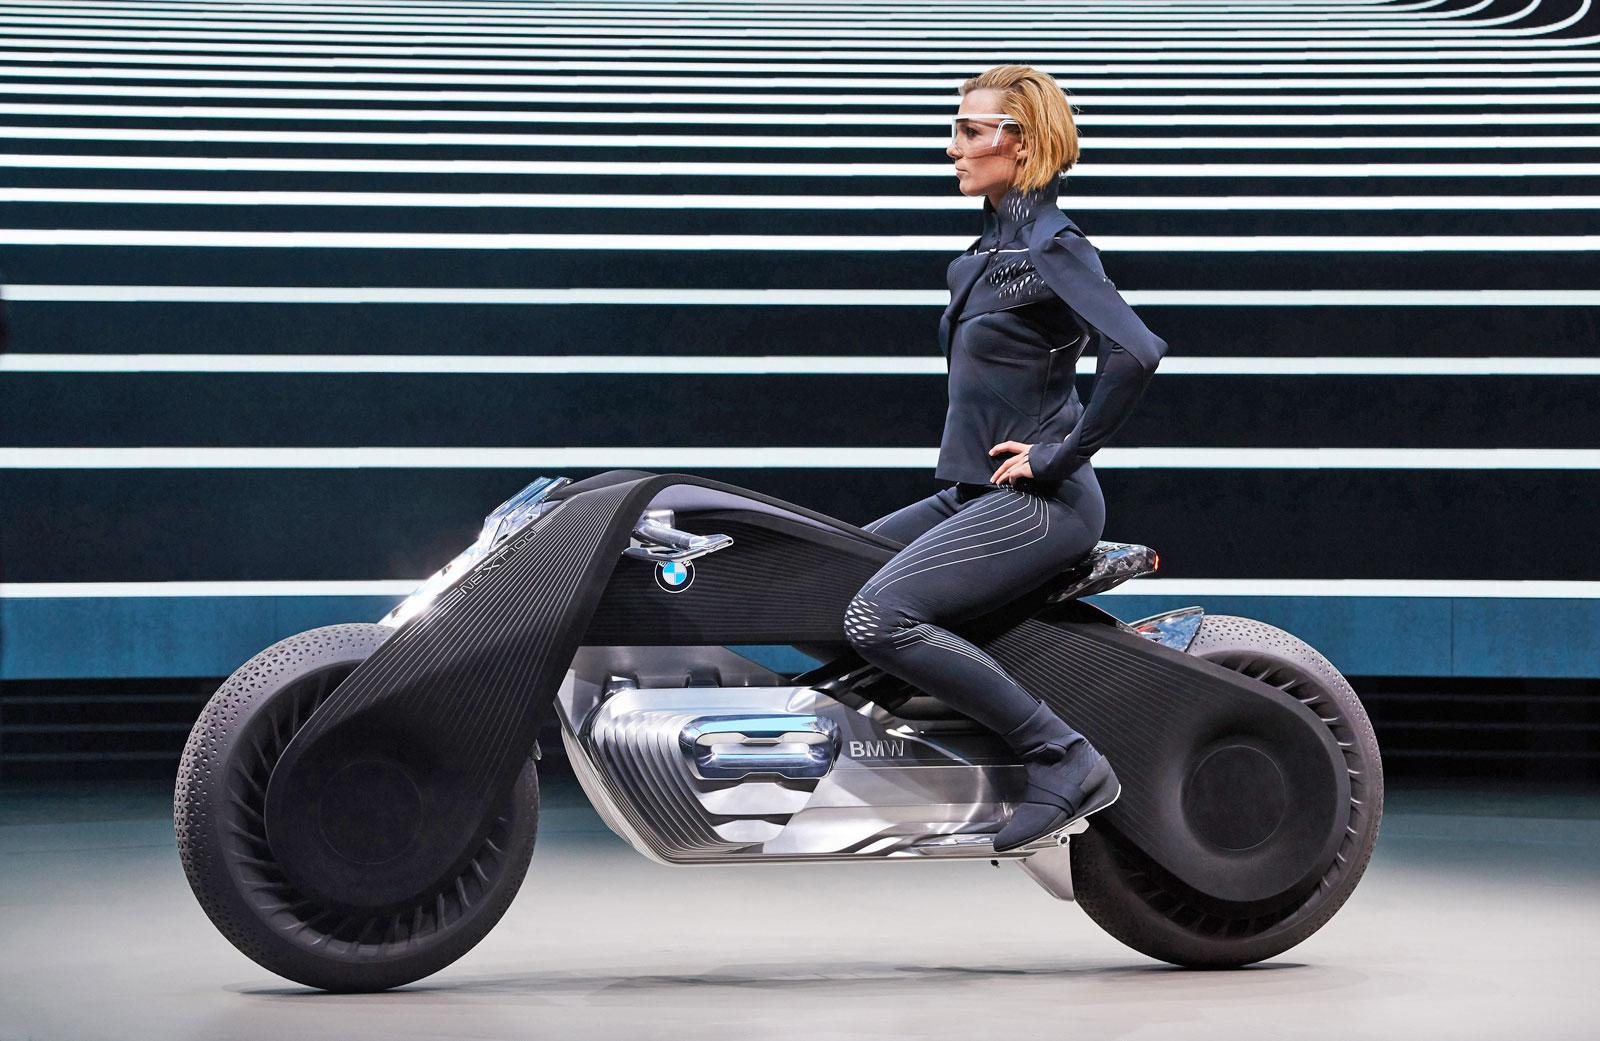 Bmw S Futuristic Motorcycle Balances On Its Own